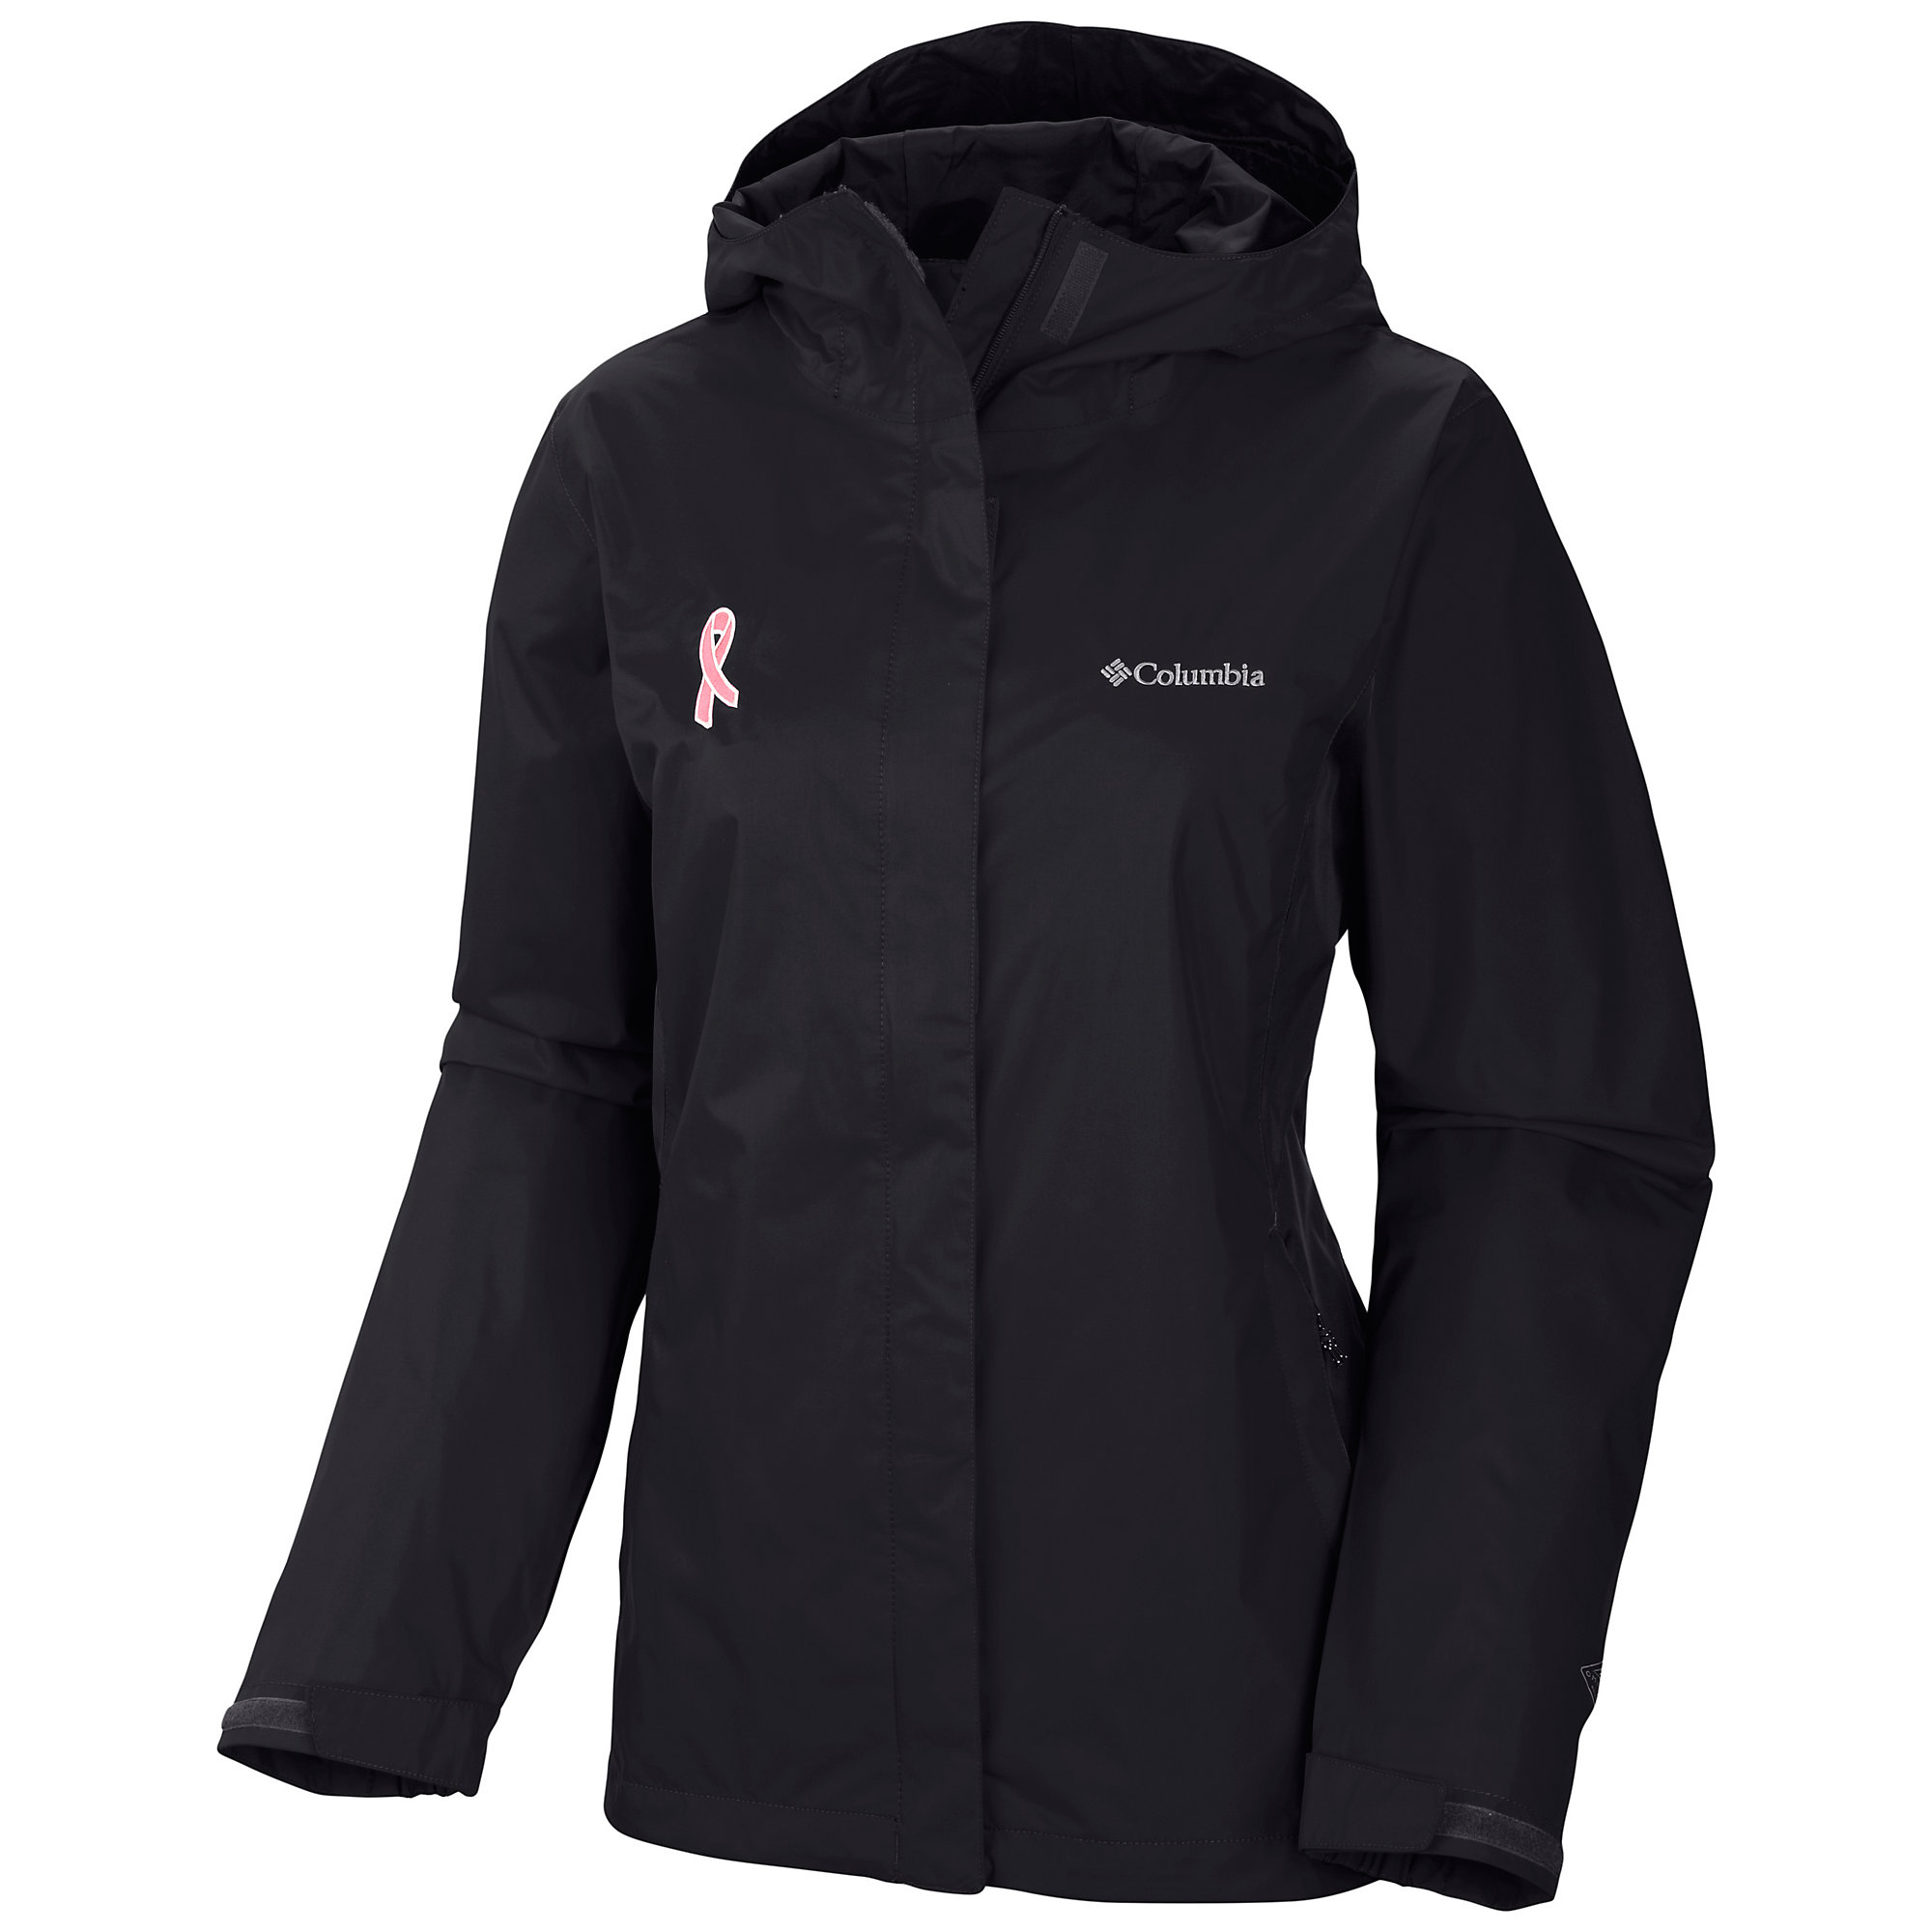 Columbia Tested Tough in Pink Rain Jacket II